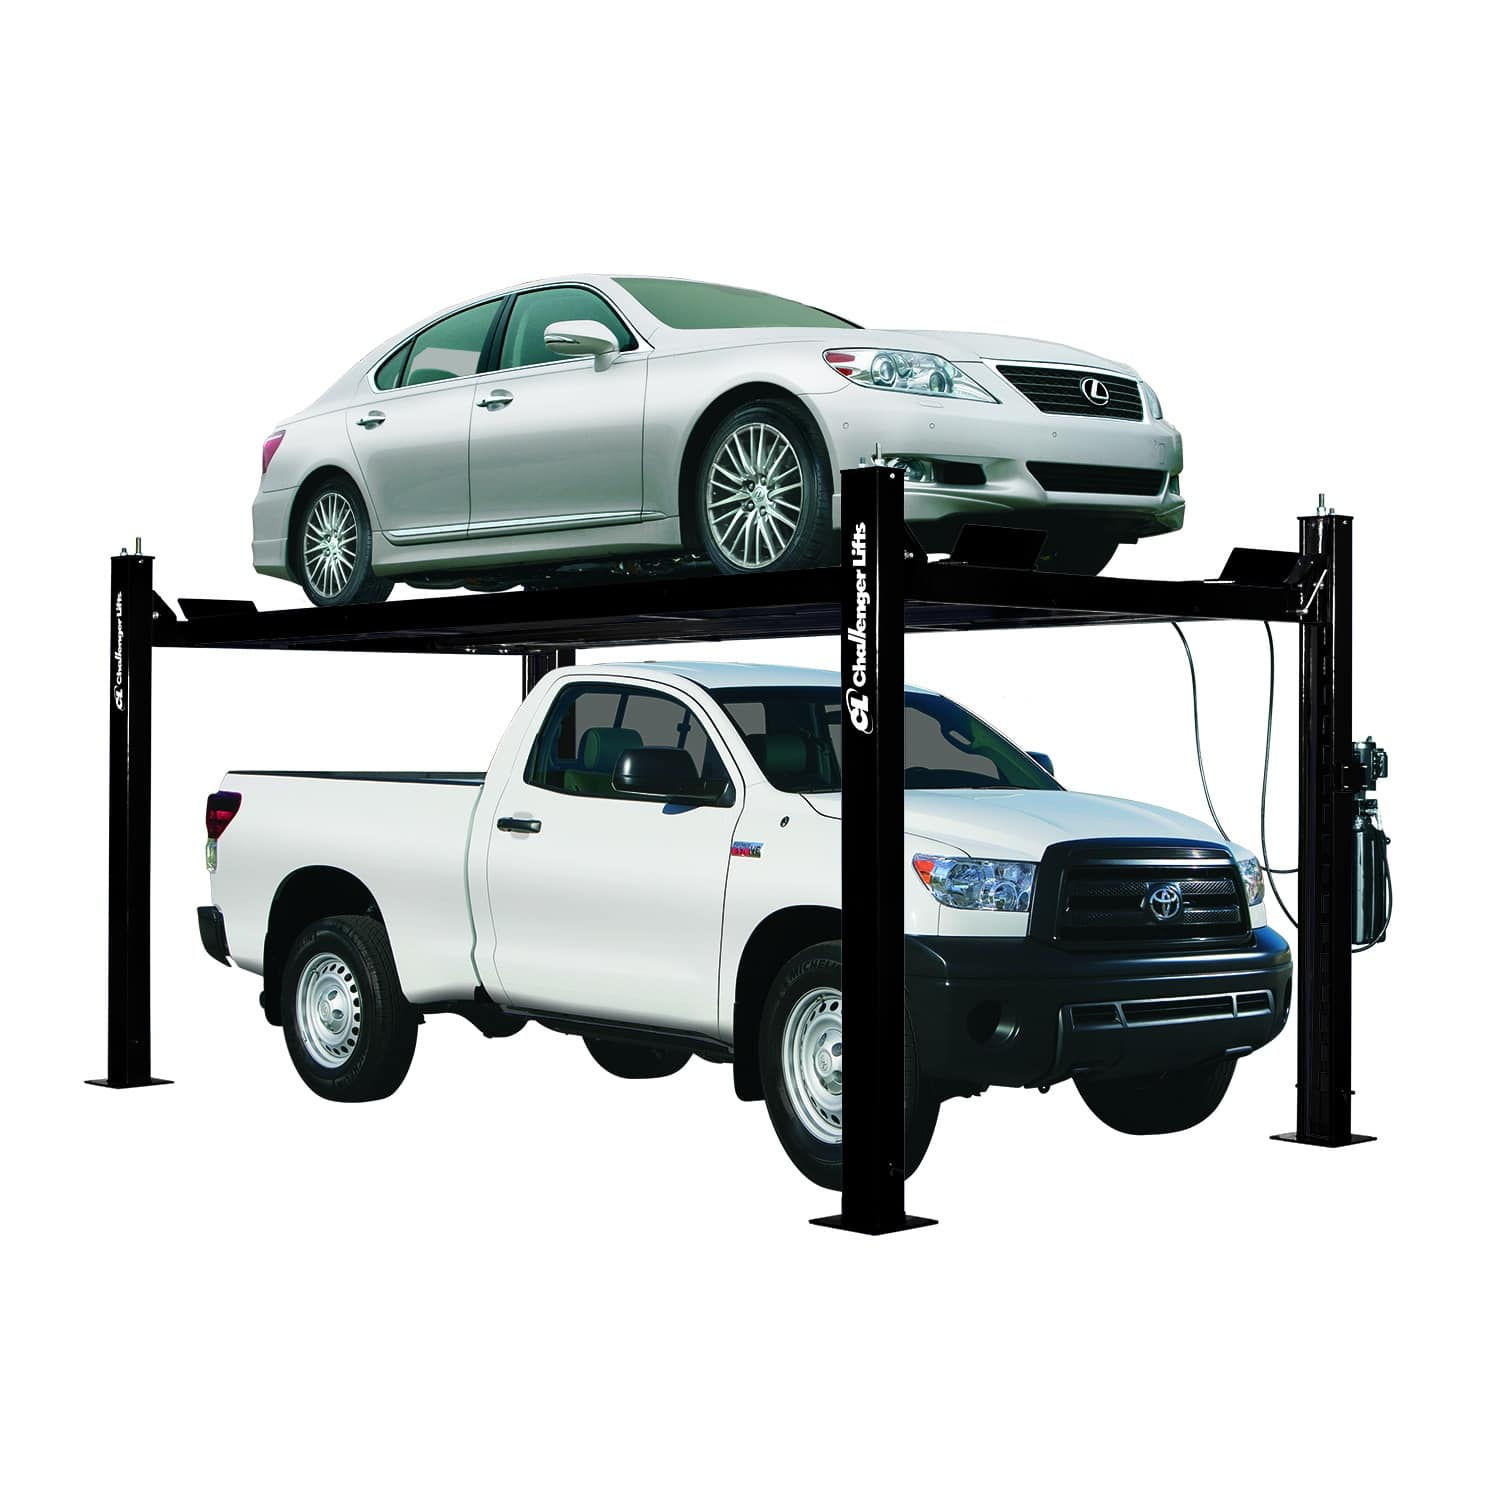 Vbm Challenger Lifts Wiring Diagrams Challengers 4 Post Garage Offer Maximum Versatility 7000 Lb Capacity And 9000 These Can Complement A Home Enthusiasts